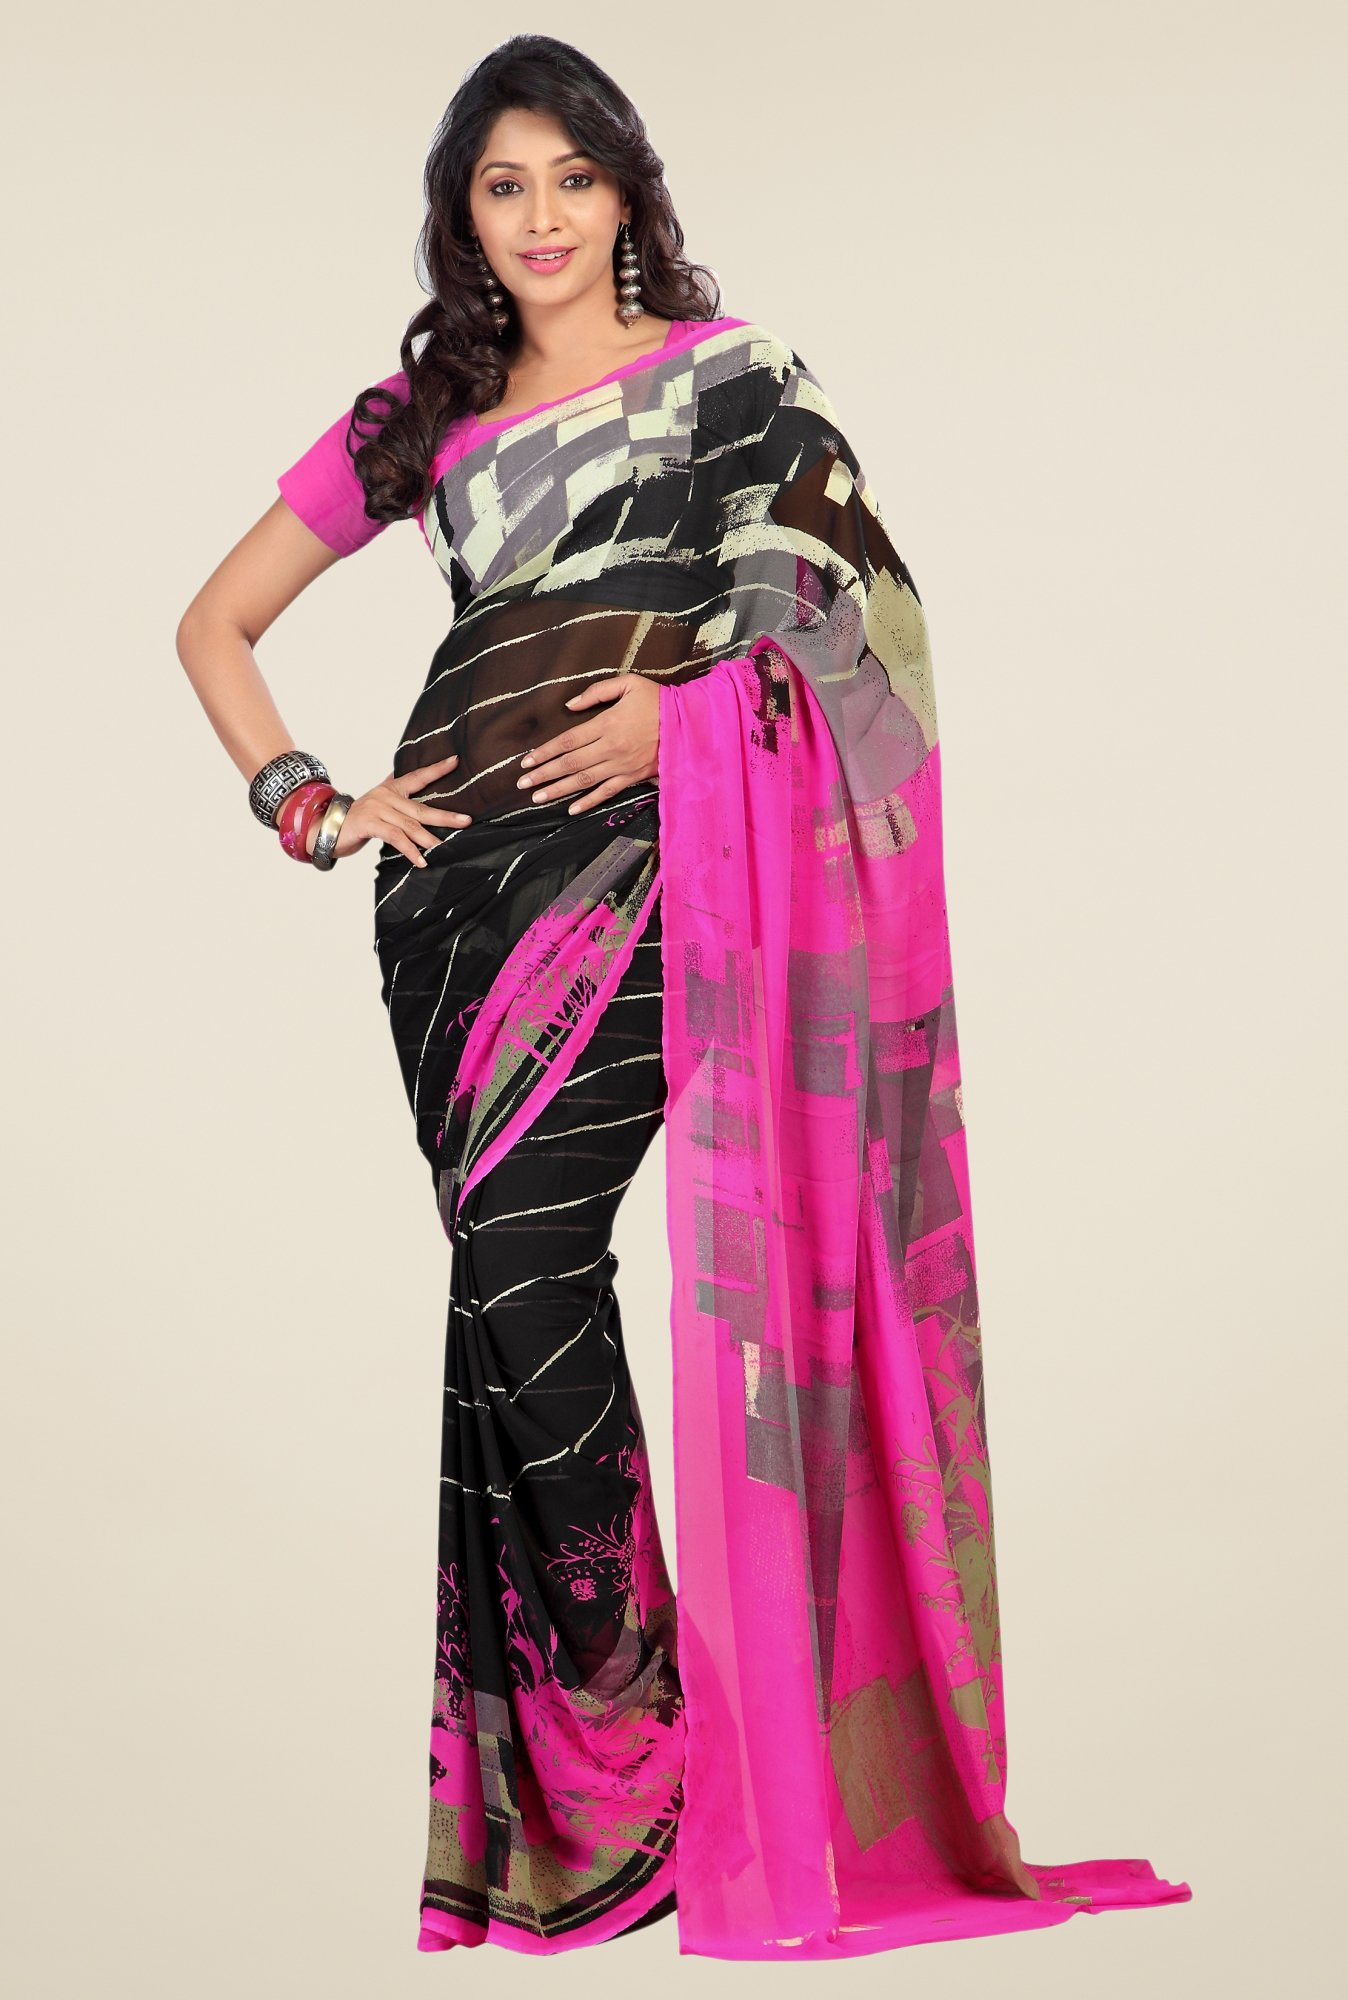 Triveni Black & Pink Printed Faux Georgette Saree